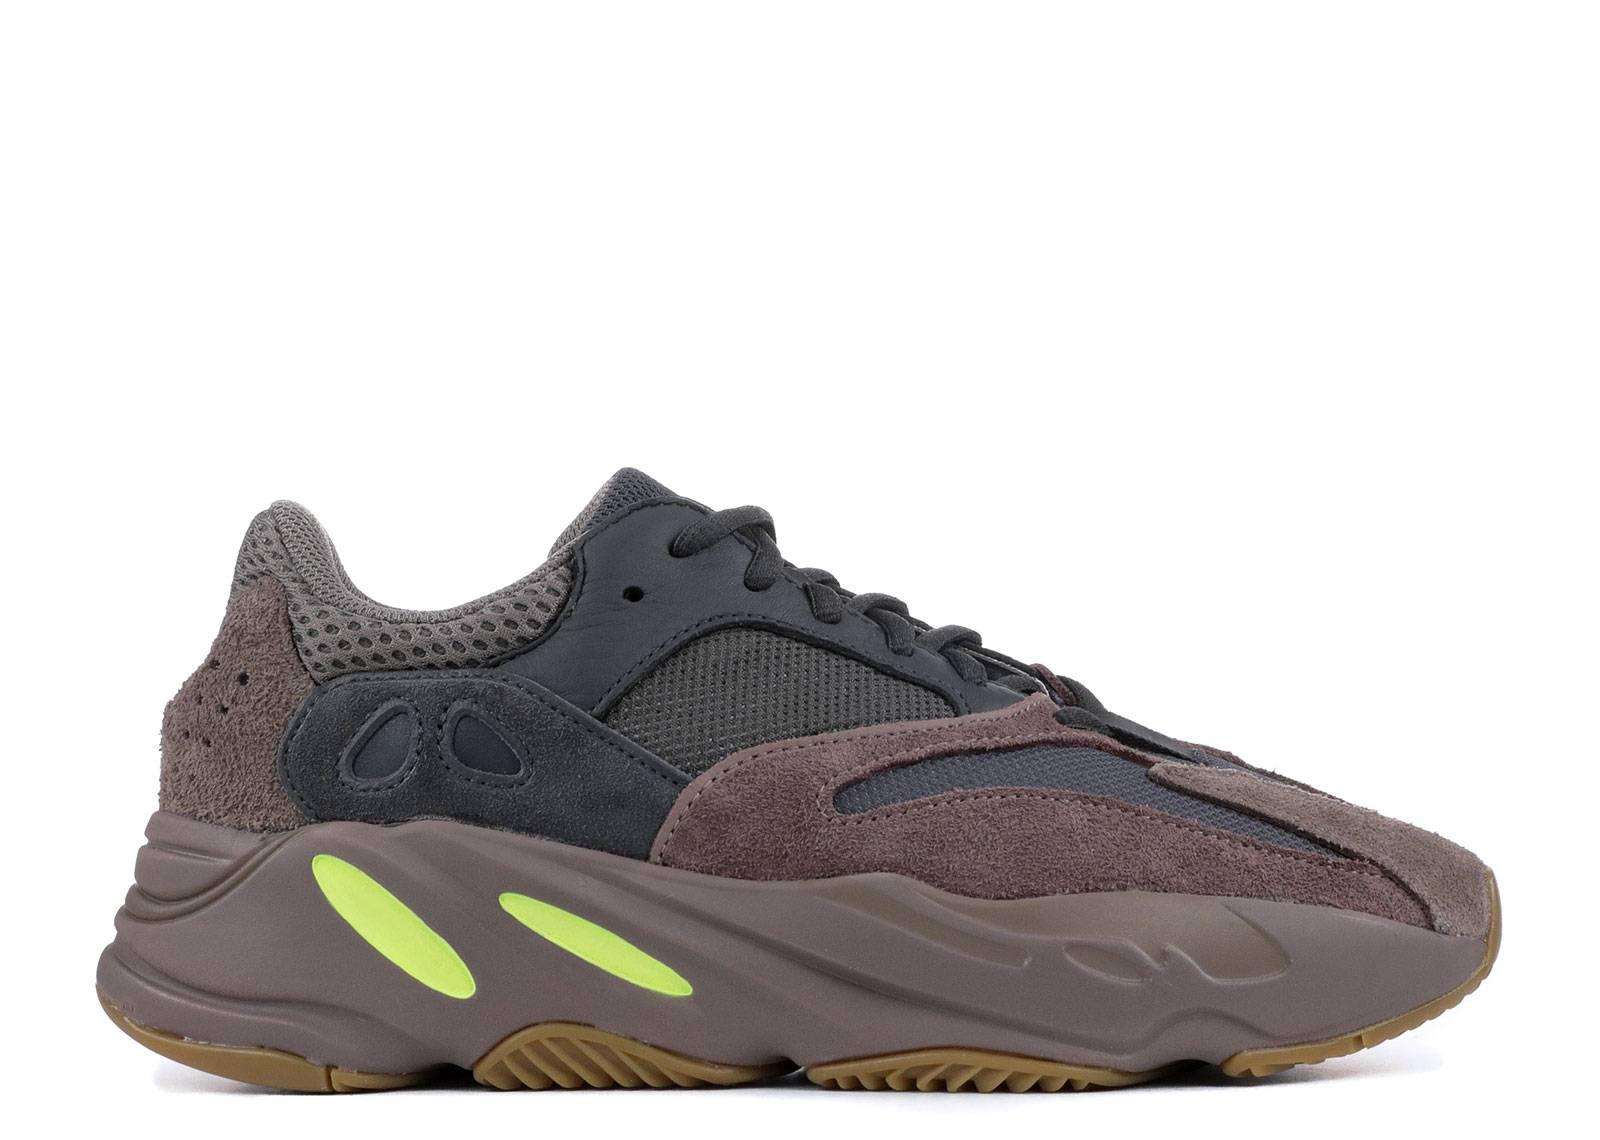 official photos 7d1d0 4edf7 yeezy boost 700